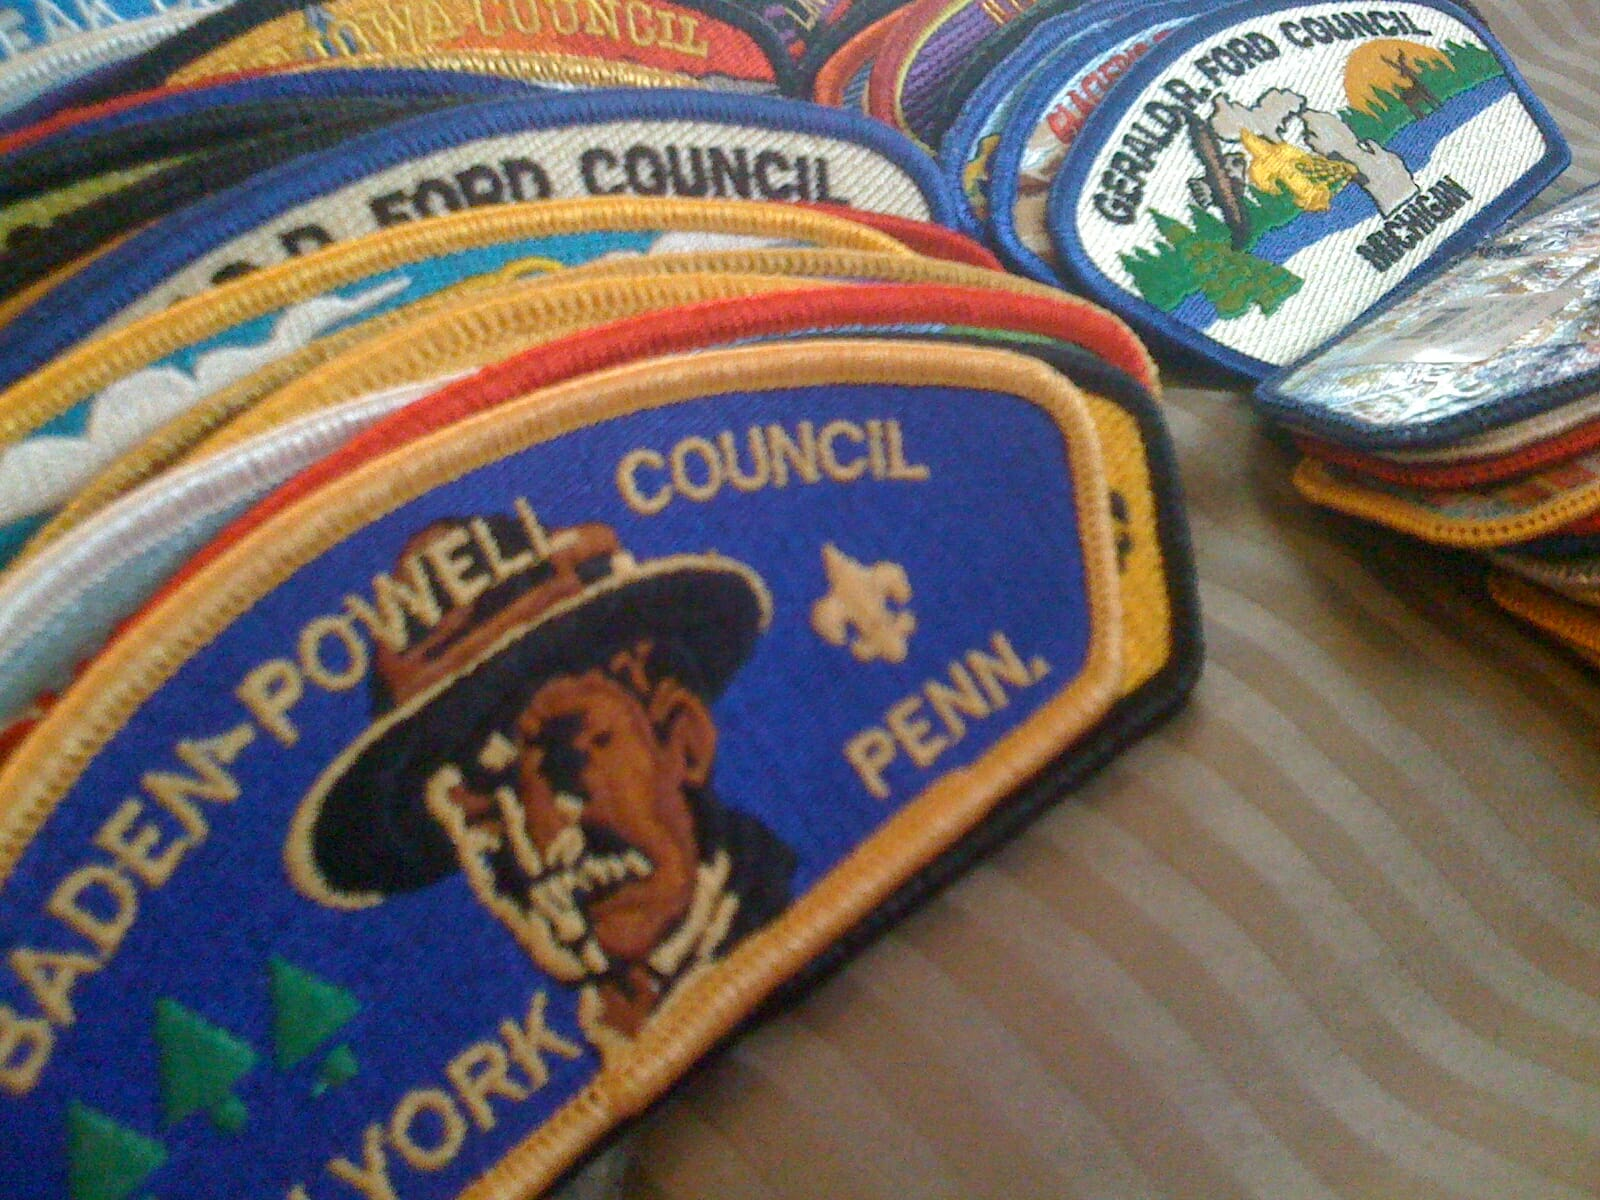 Boy Scout Council Shoulder Patches